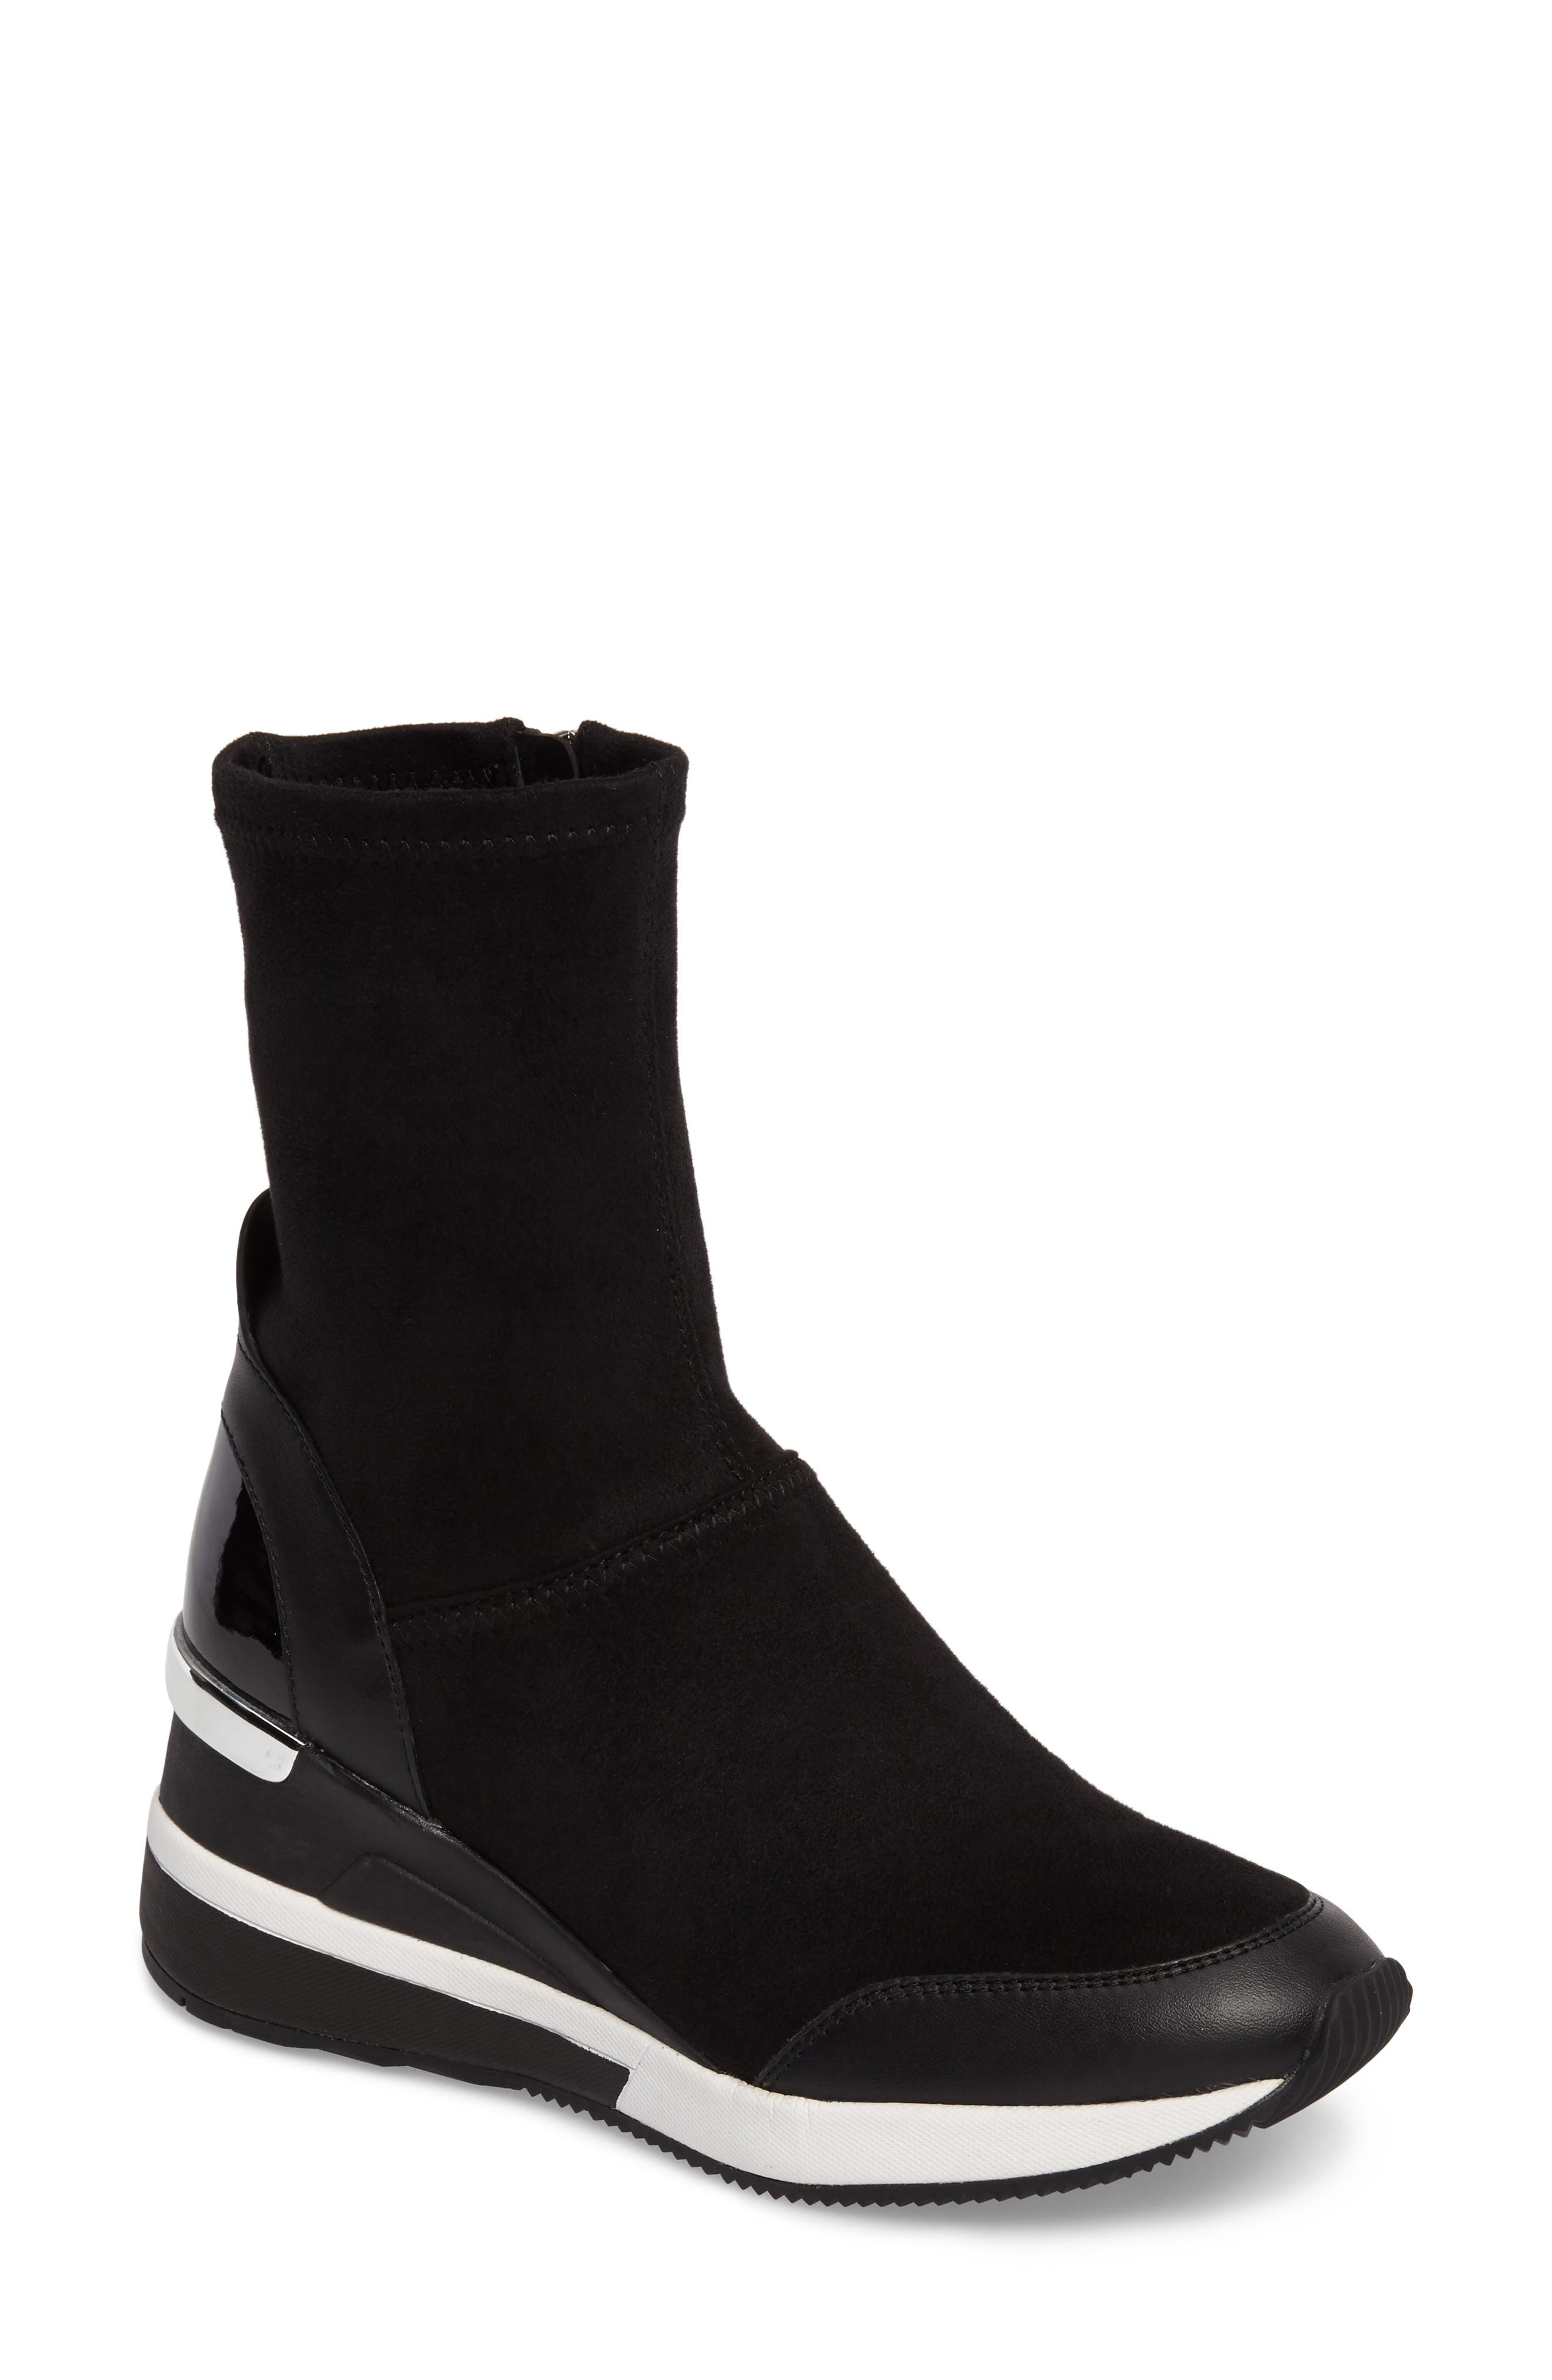 michael kors ace stretch sneakers